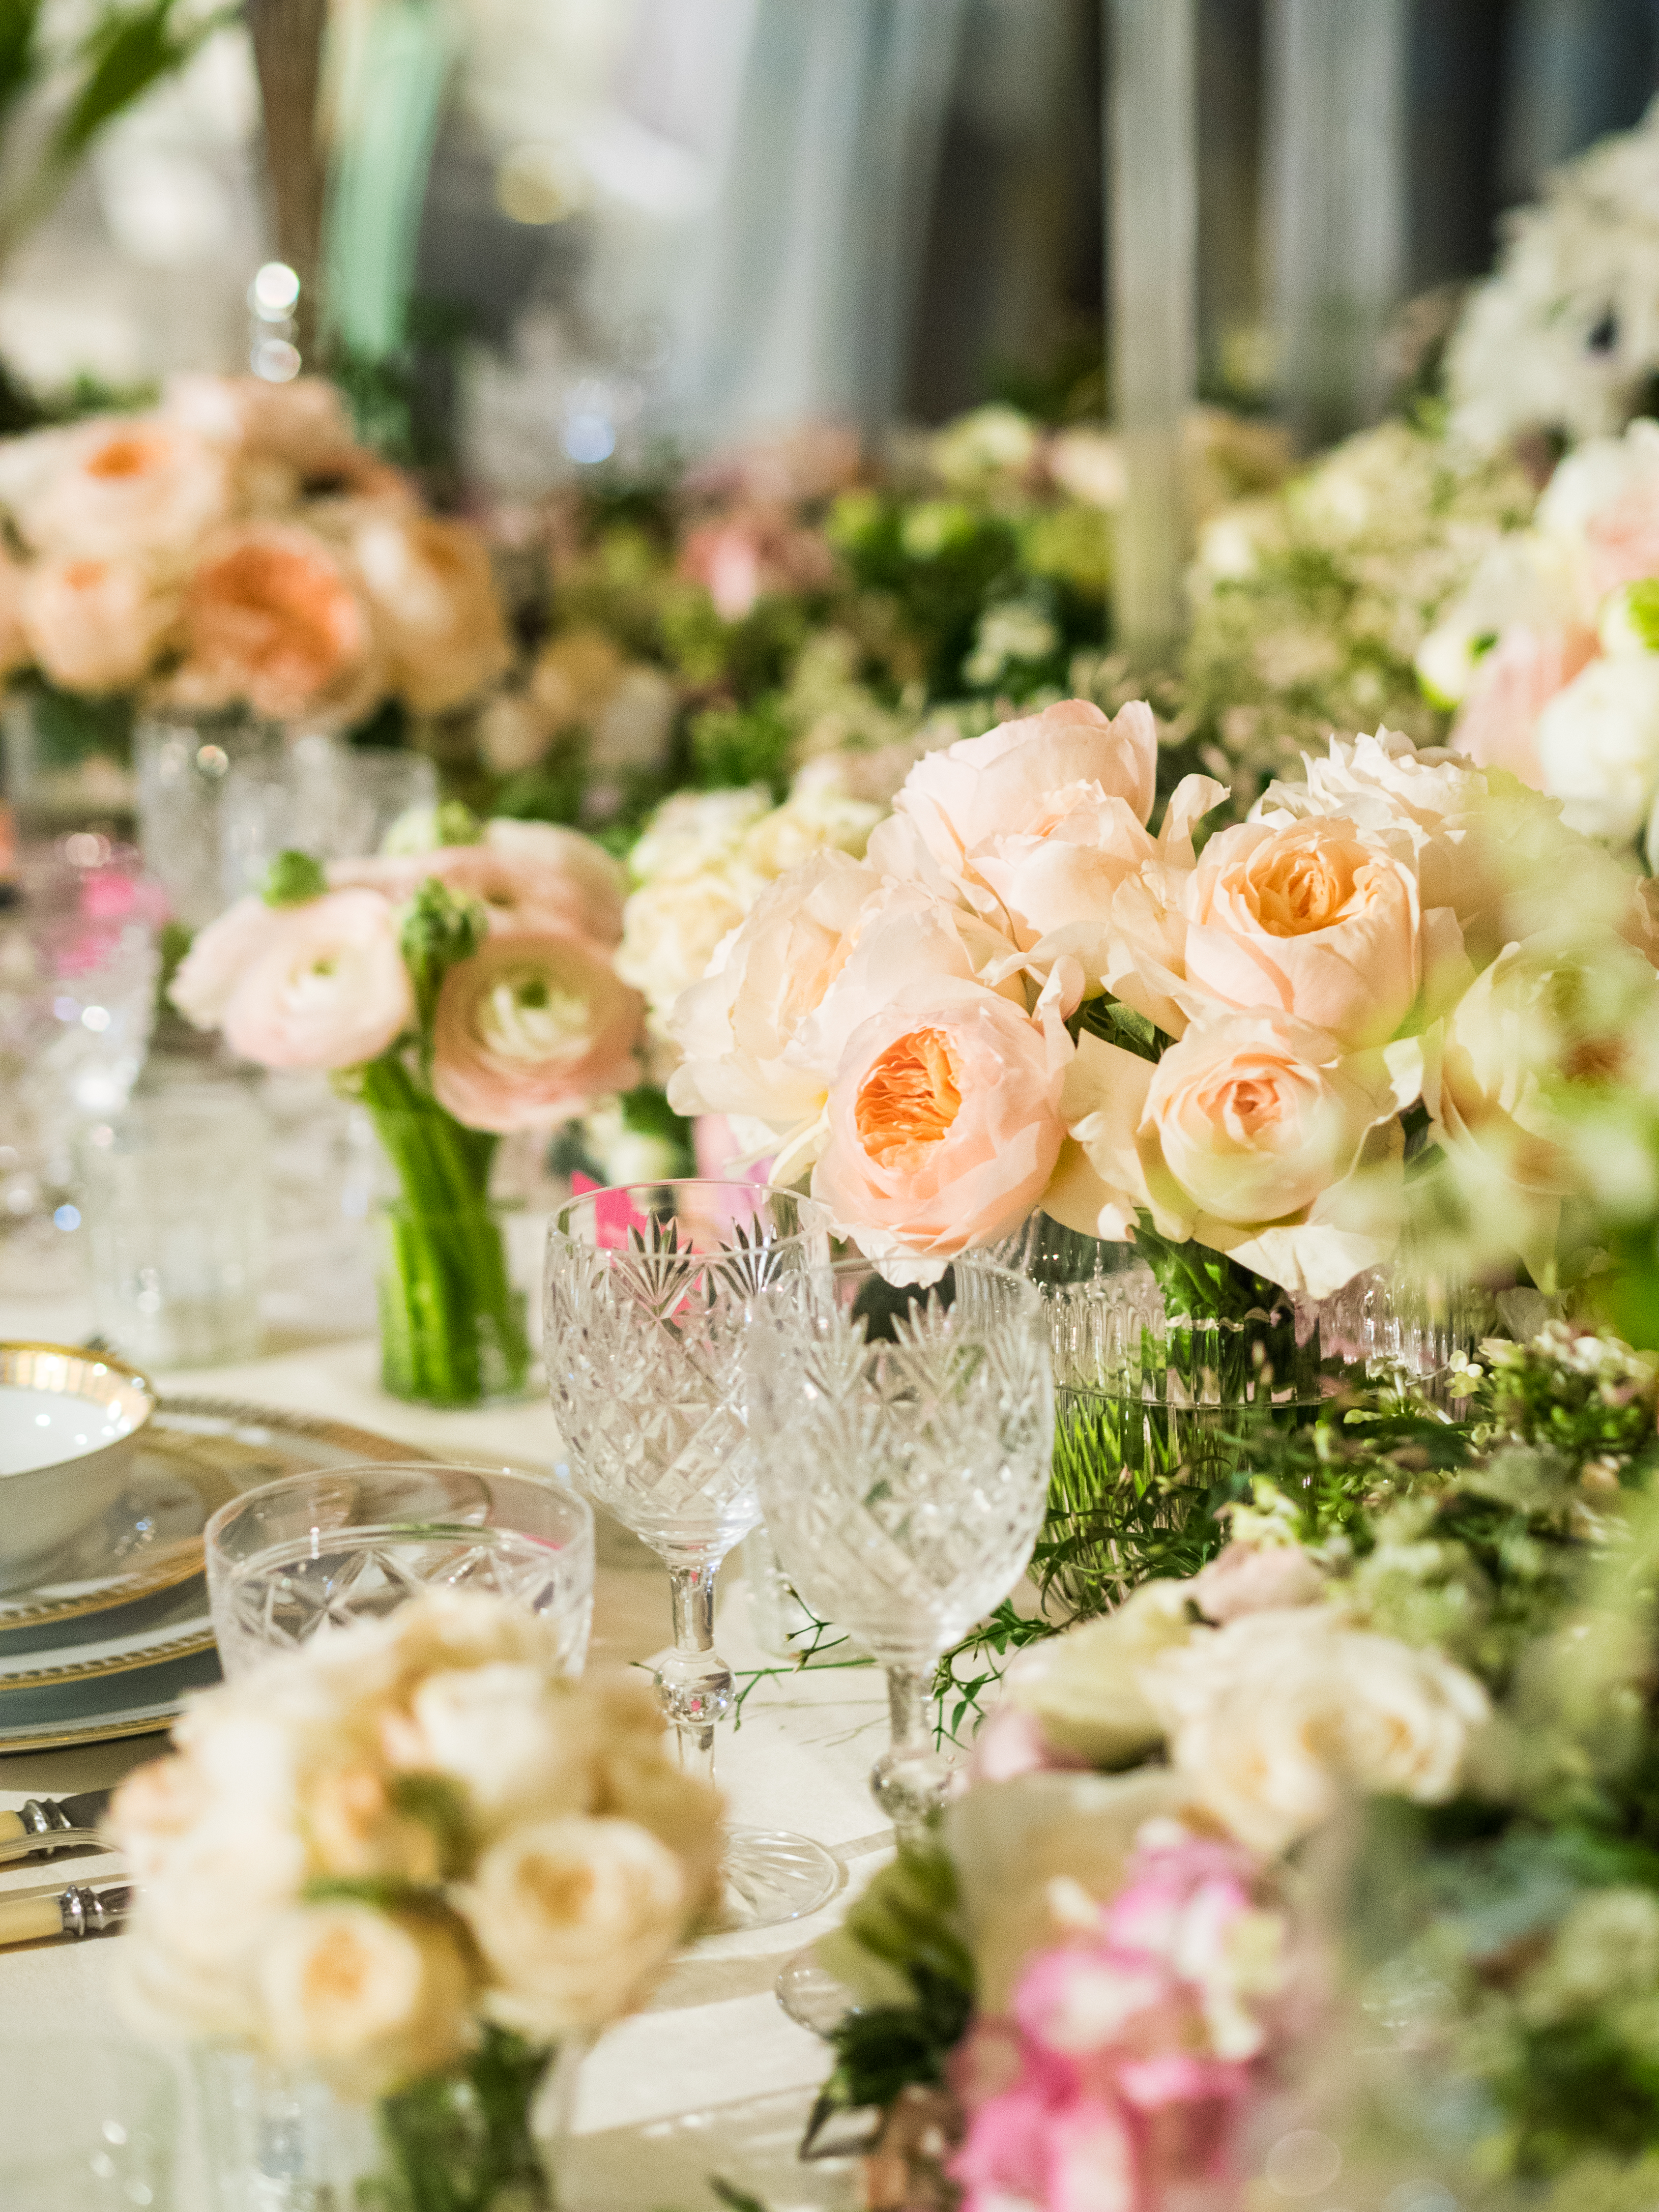 The Bridelux Atelier Show for Luxury Weddings - BLOVED Blog